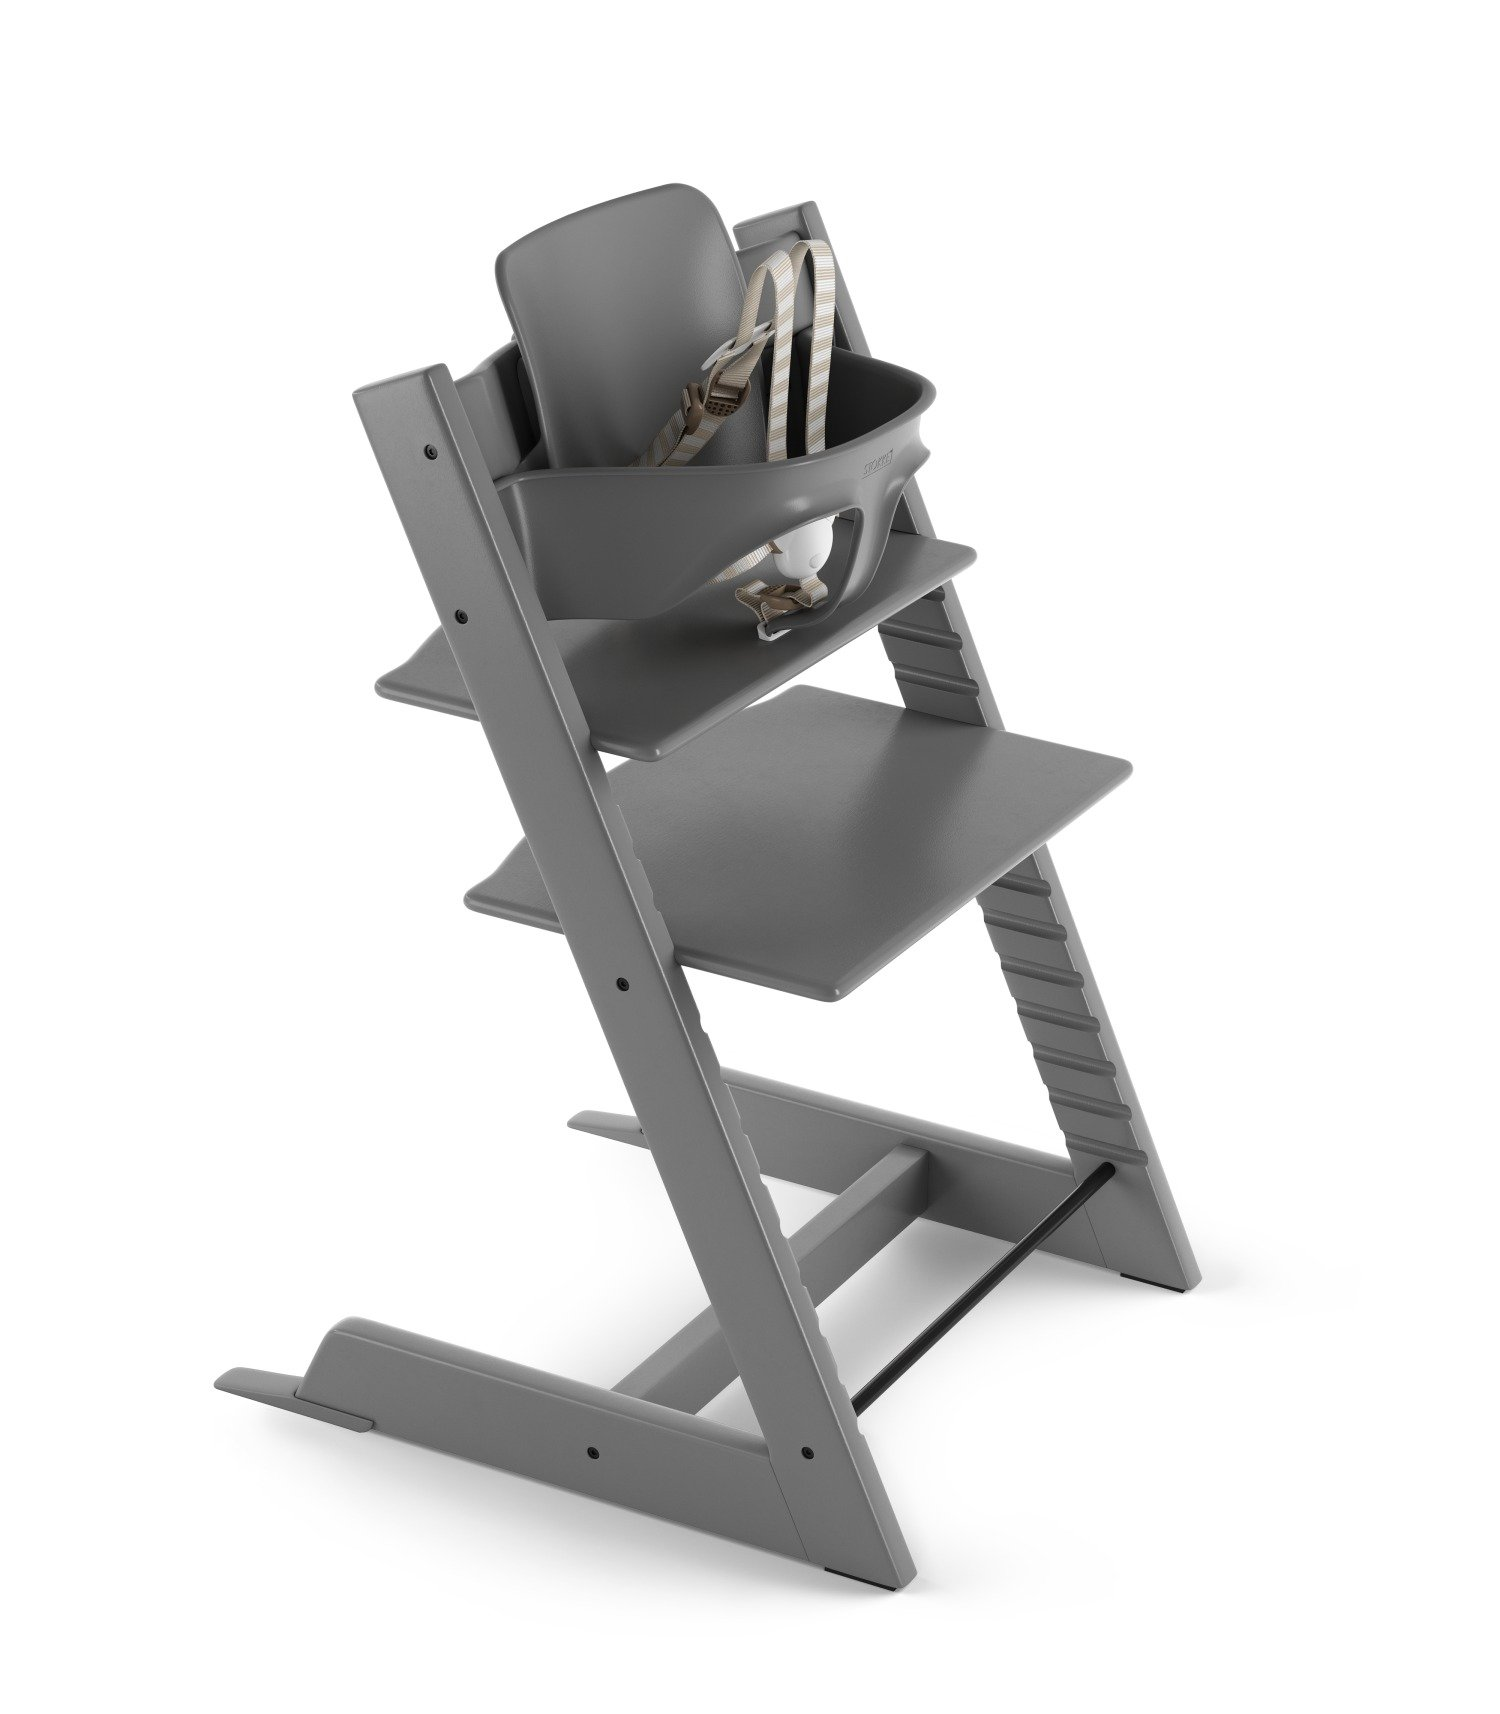 Stokke Tripp Trapp High Chair Package - Storm Grey